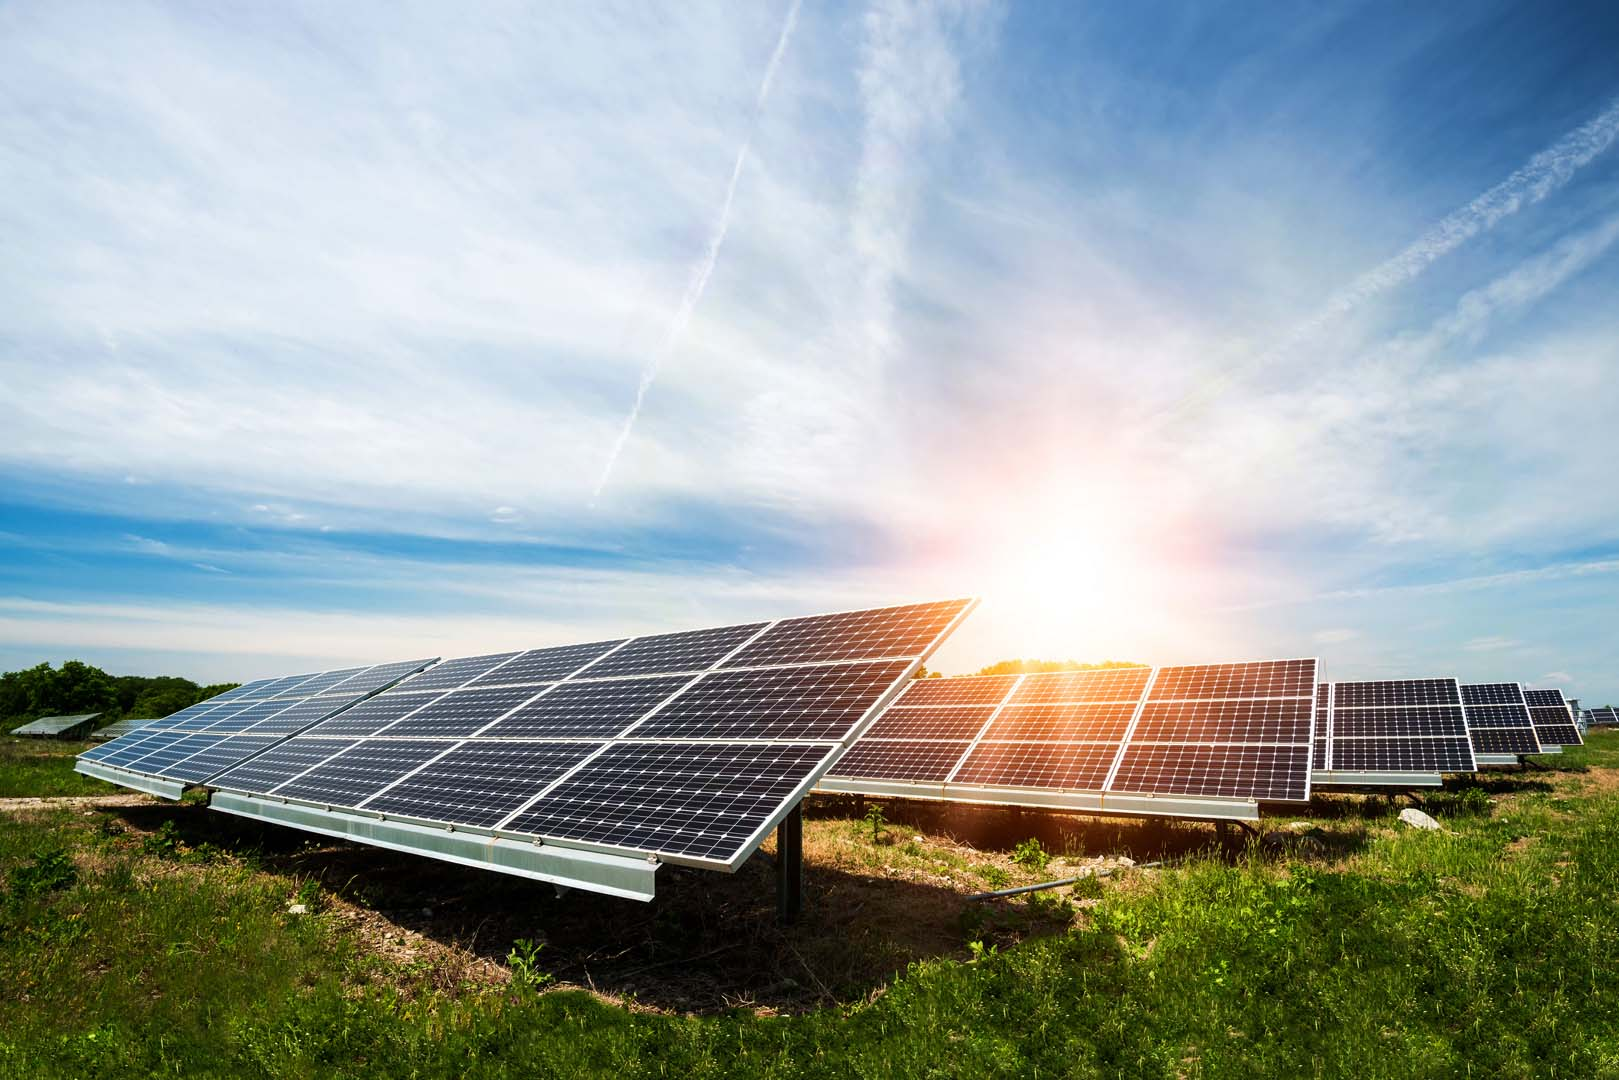 Savosolar enters China market and partners with Jiangsu Holly Environmental Technology Industrial